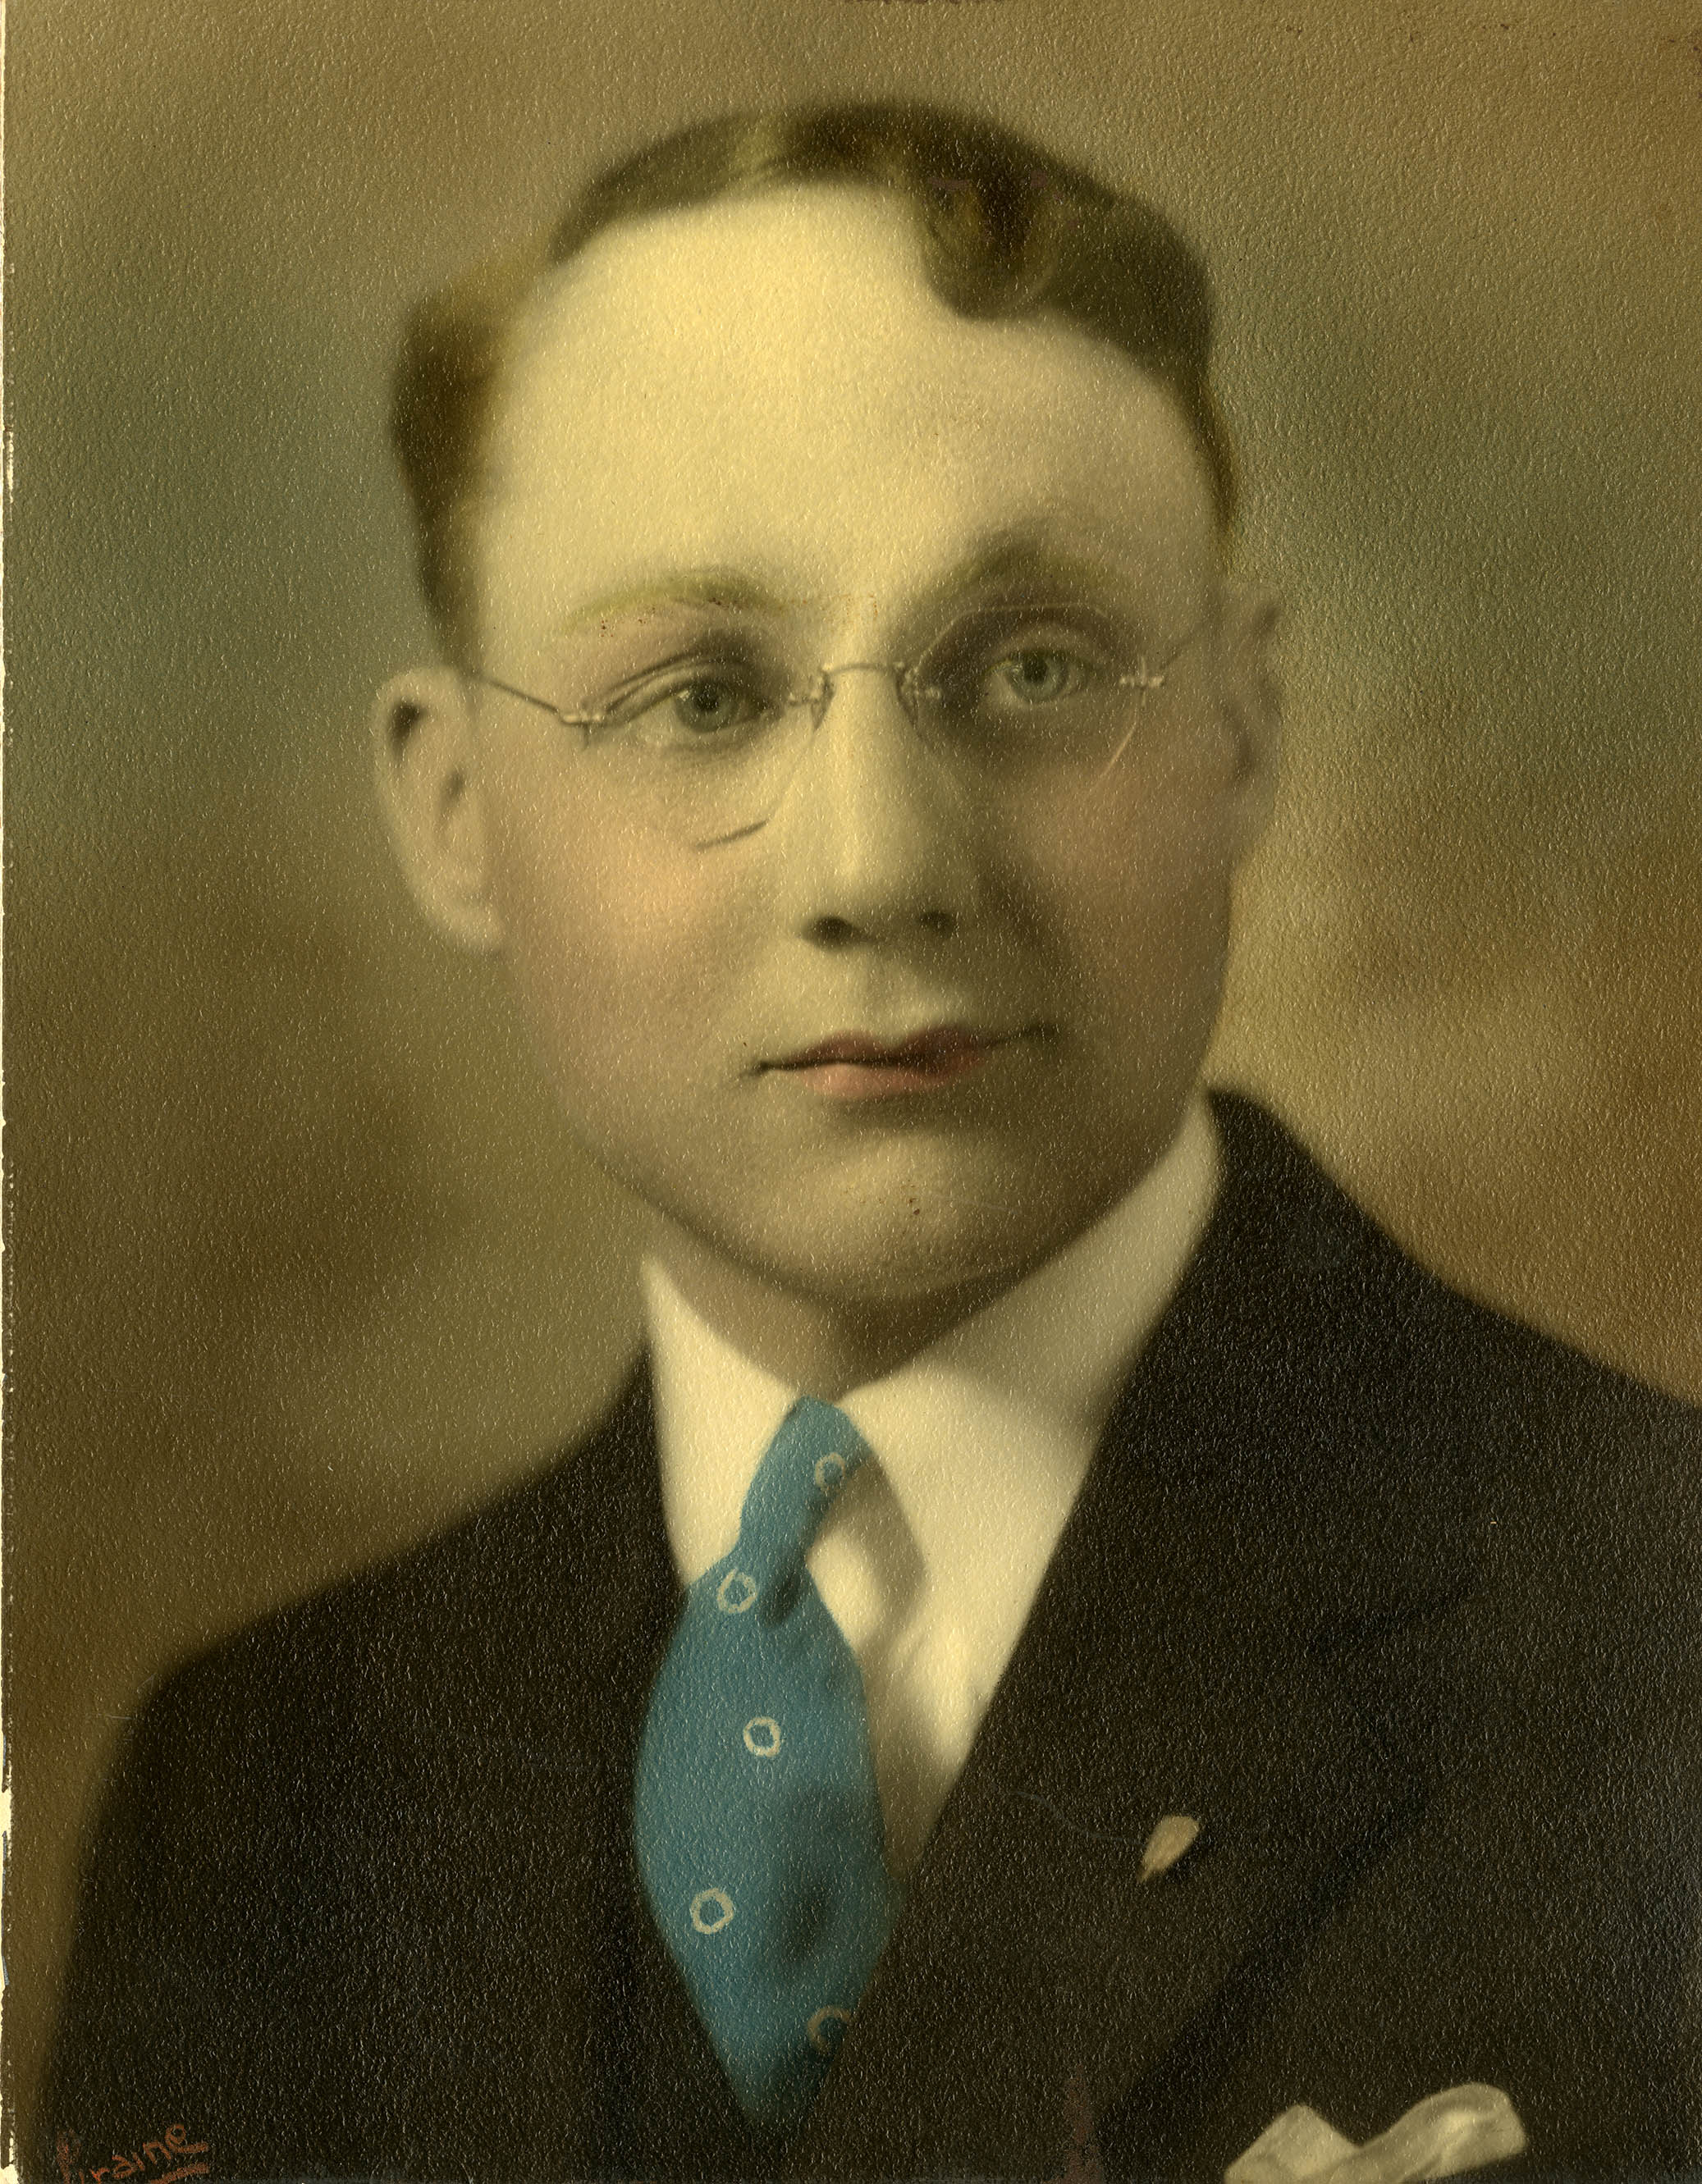 Merlin D. Bishop, high school graduation photograph, 1931